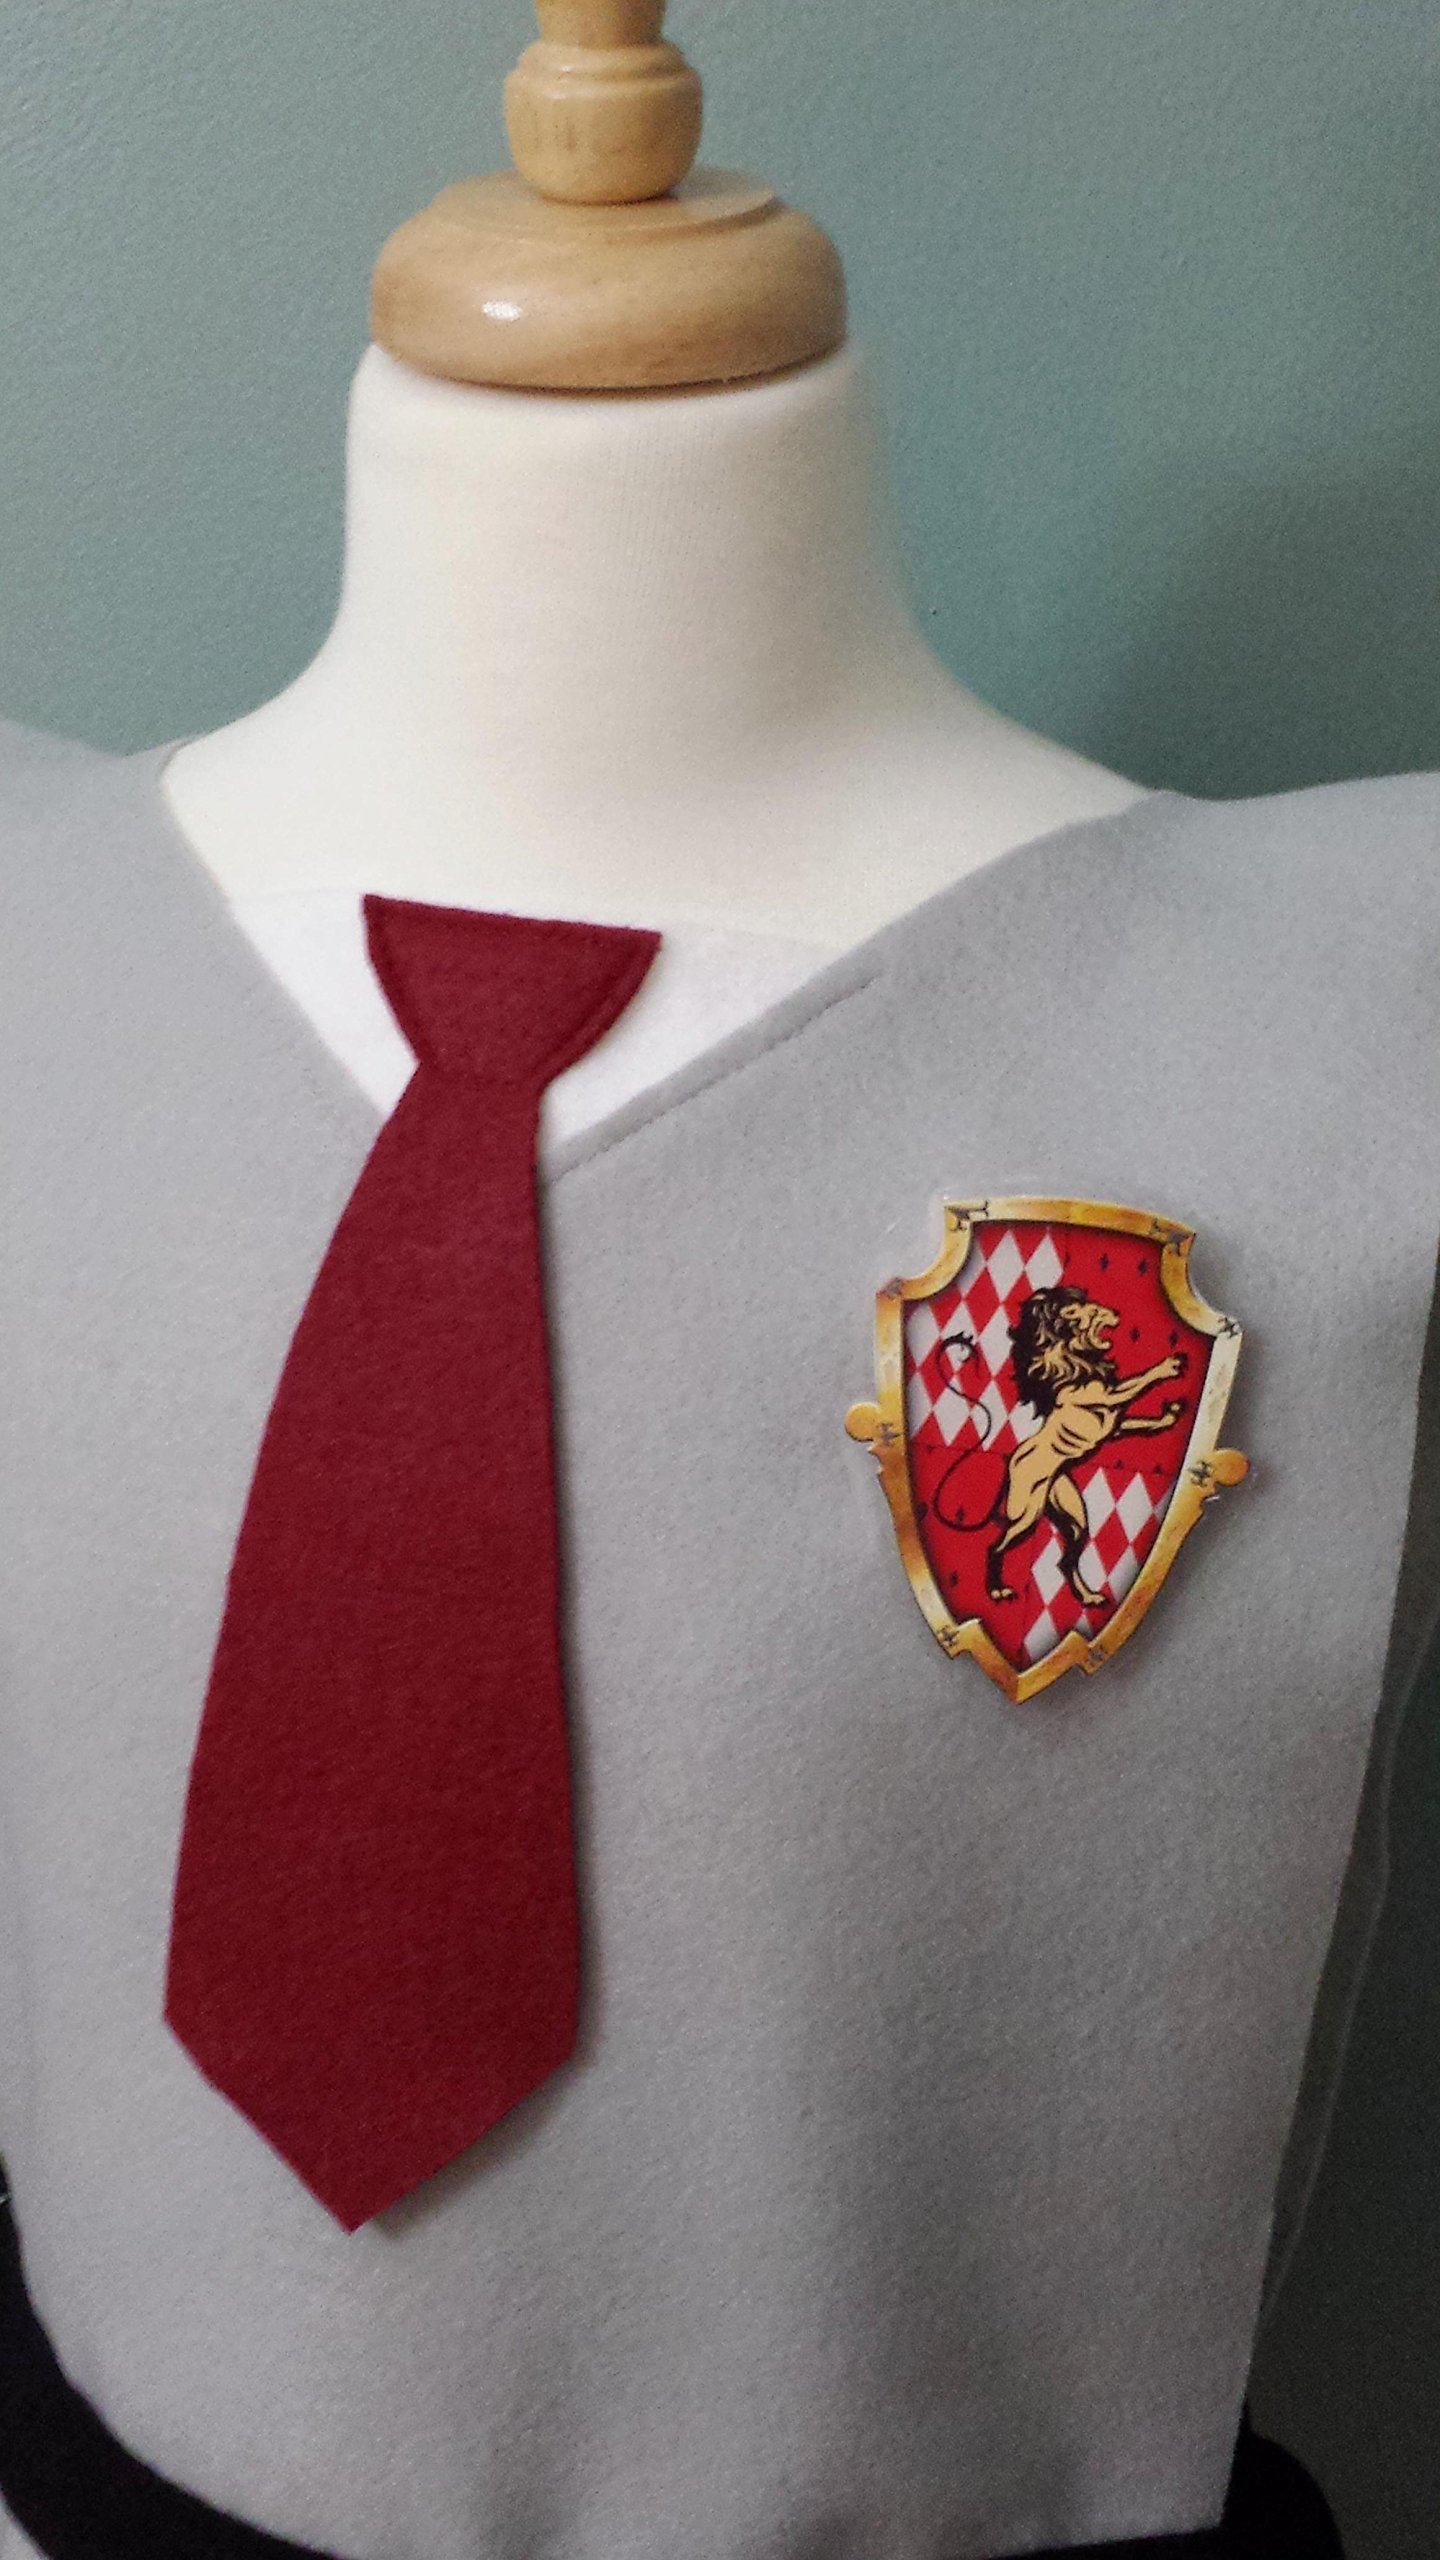 Kids Gryffindor Costume Tunic - Perfect for under your robe! (Harry Potter/Hermione/Hogwarts) - Baby/Toddler/Kids/Teens/Adult Sizes